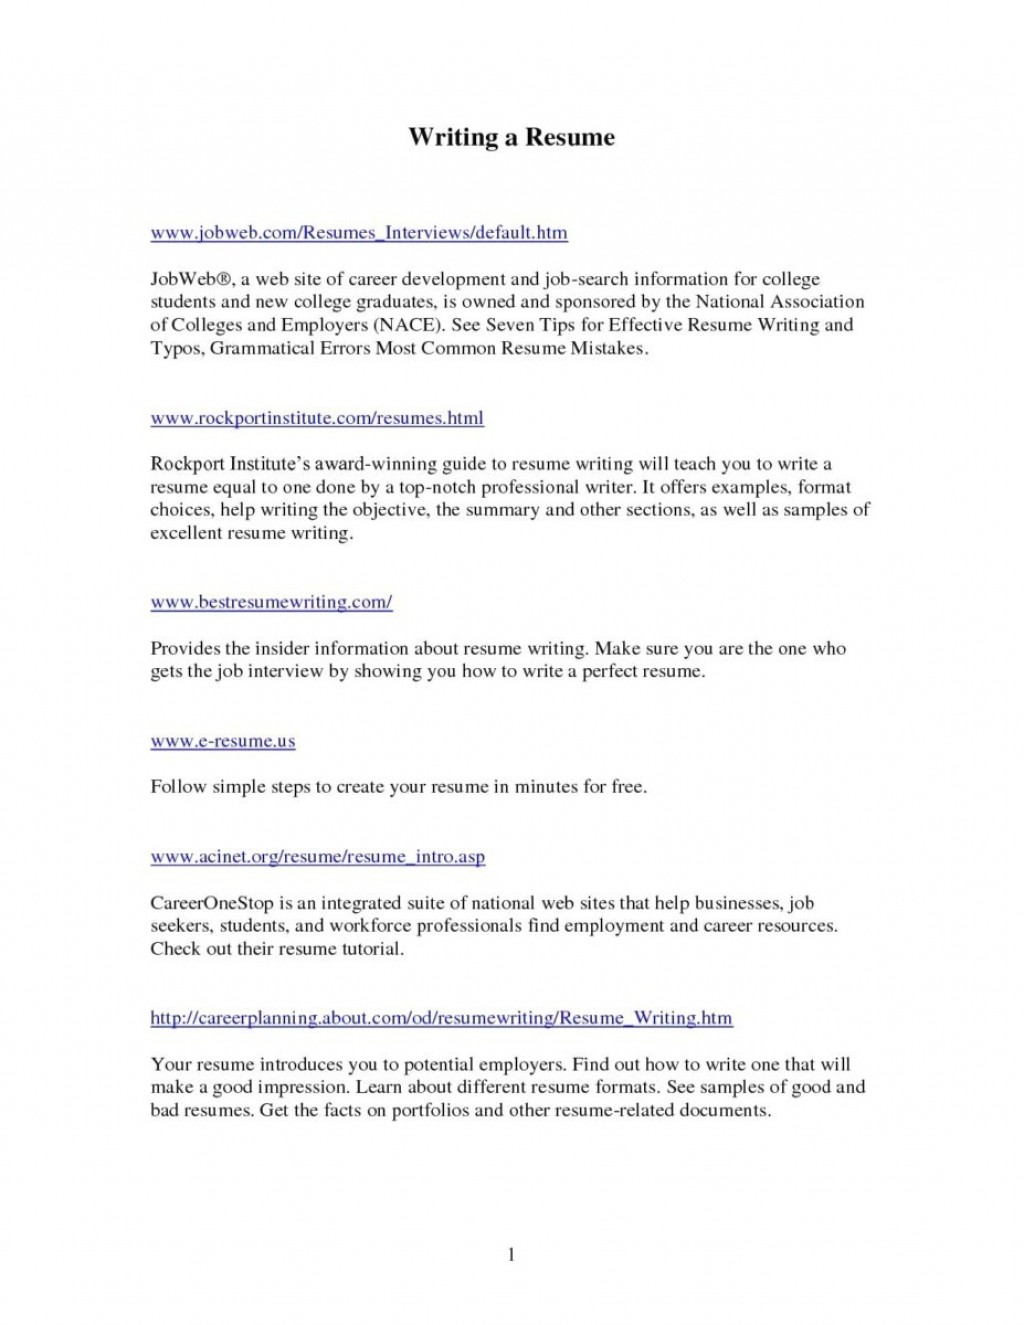 011 Research Paper Resume Writing Service Reviews Format Best Writers Inspirational Help Professional Of Free Services How To Do Wondrous Outline Write A History An For Large